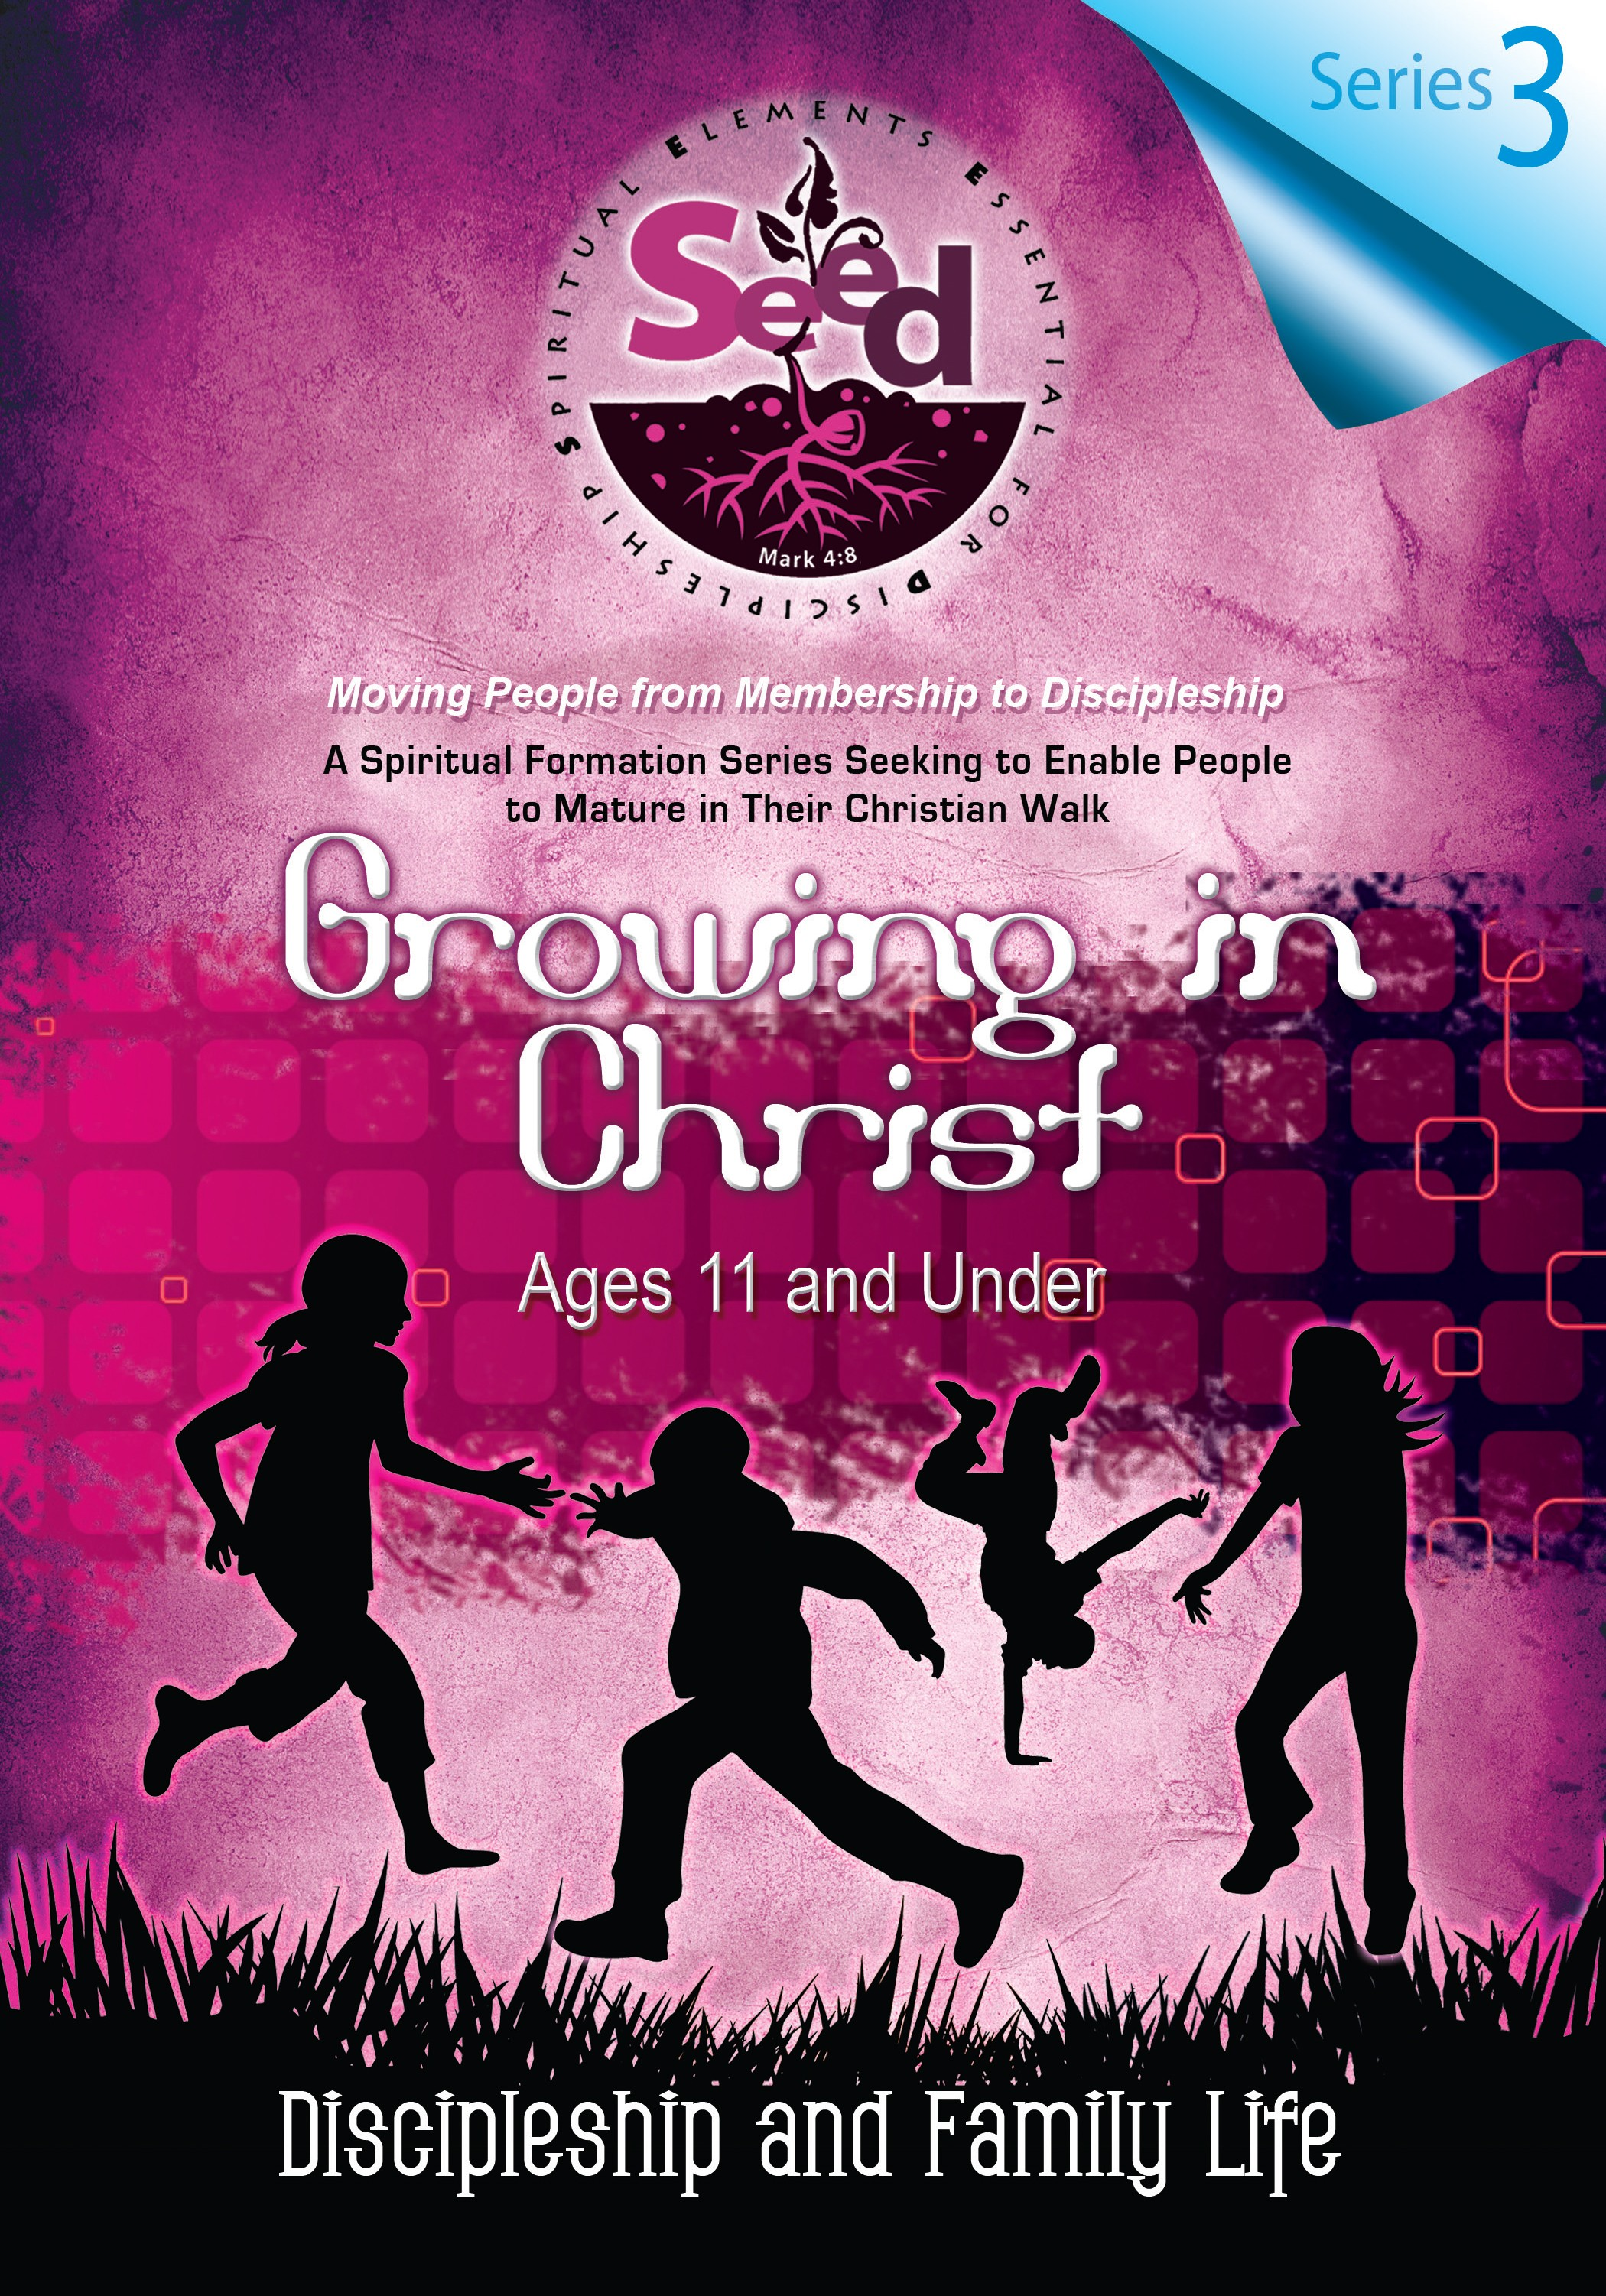 SEED Growing in Christ (Ages 11 and Under): Series 3: Discipleship and Family Life